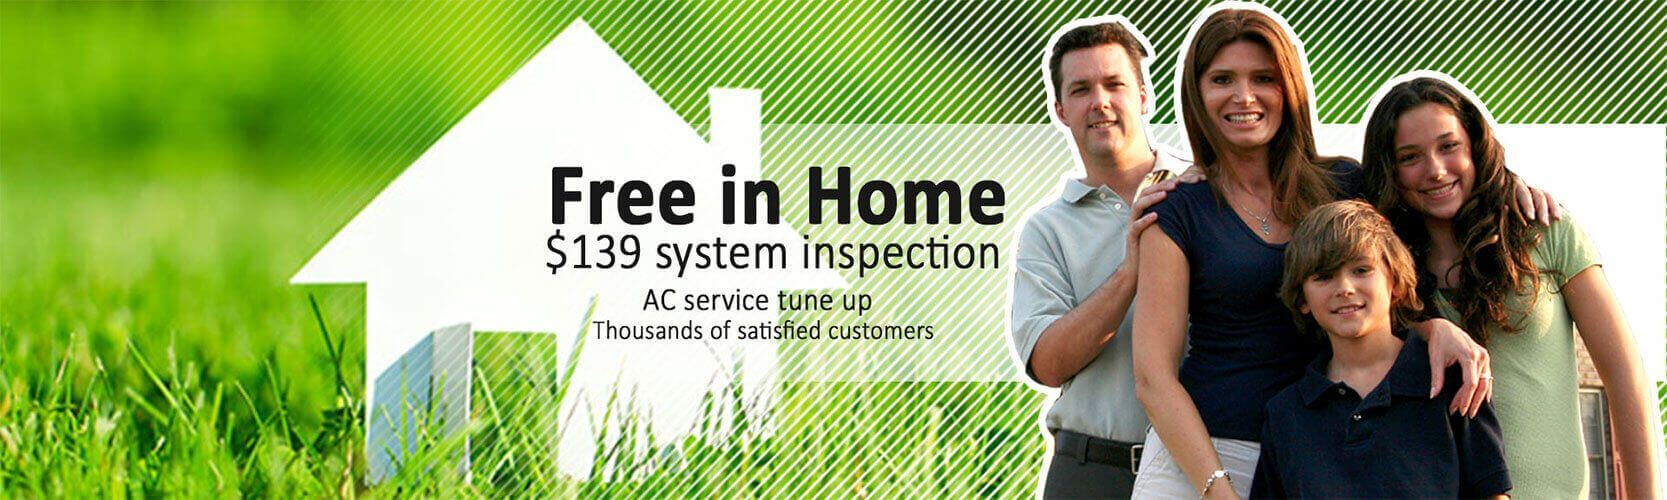 residential air conditioning service nj